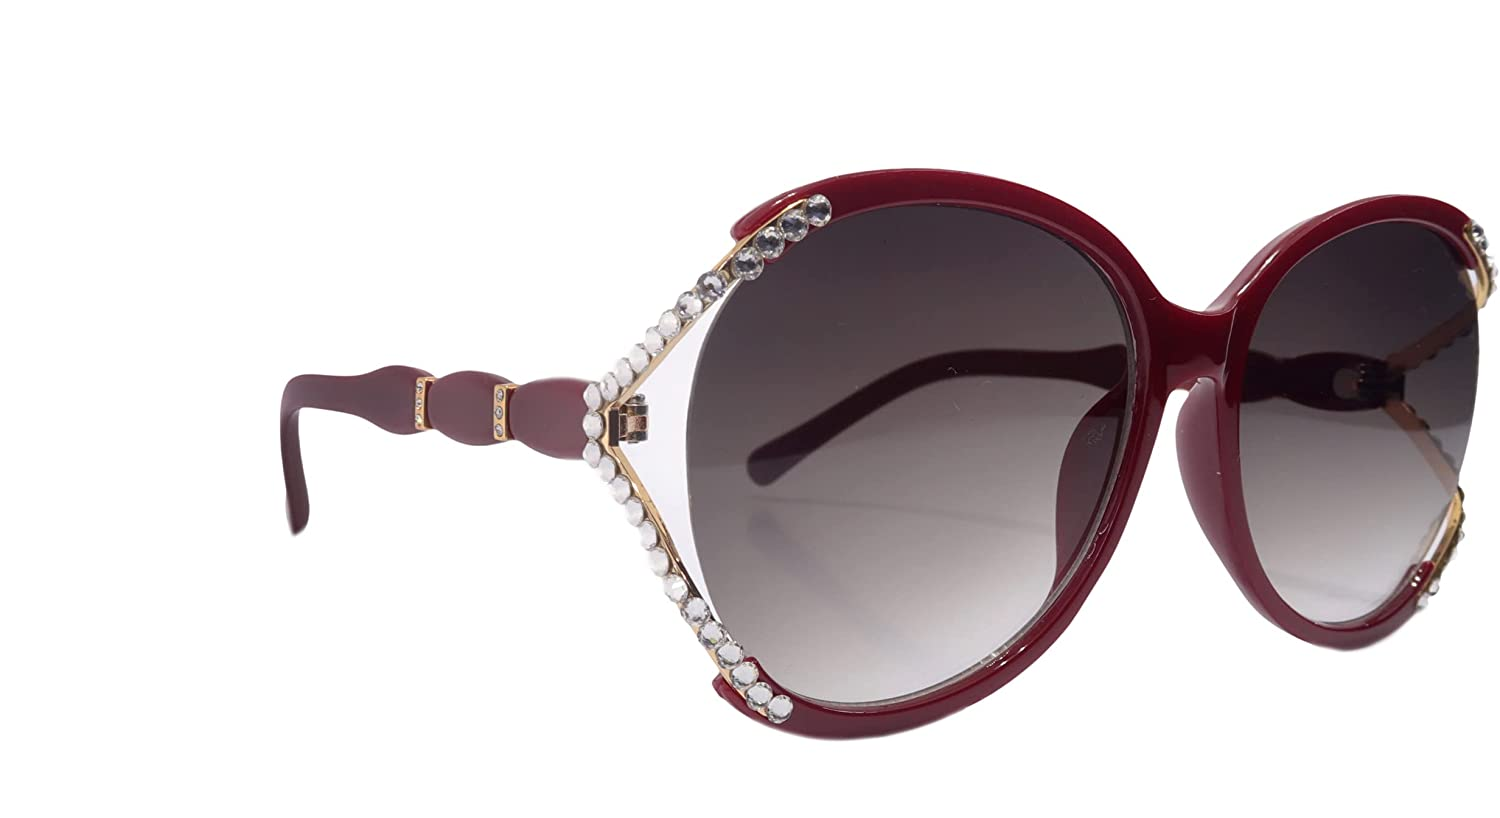 Bling Women Sunglasses Adorned Max 62% OFF with UV Pr Large-scale sale 100% Genuine Crystals